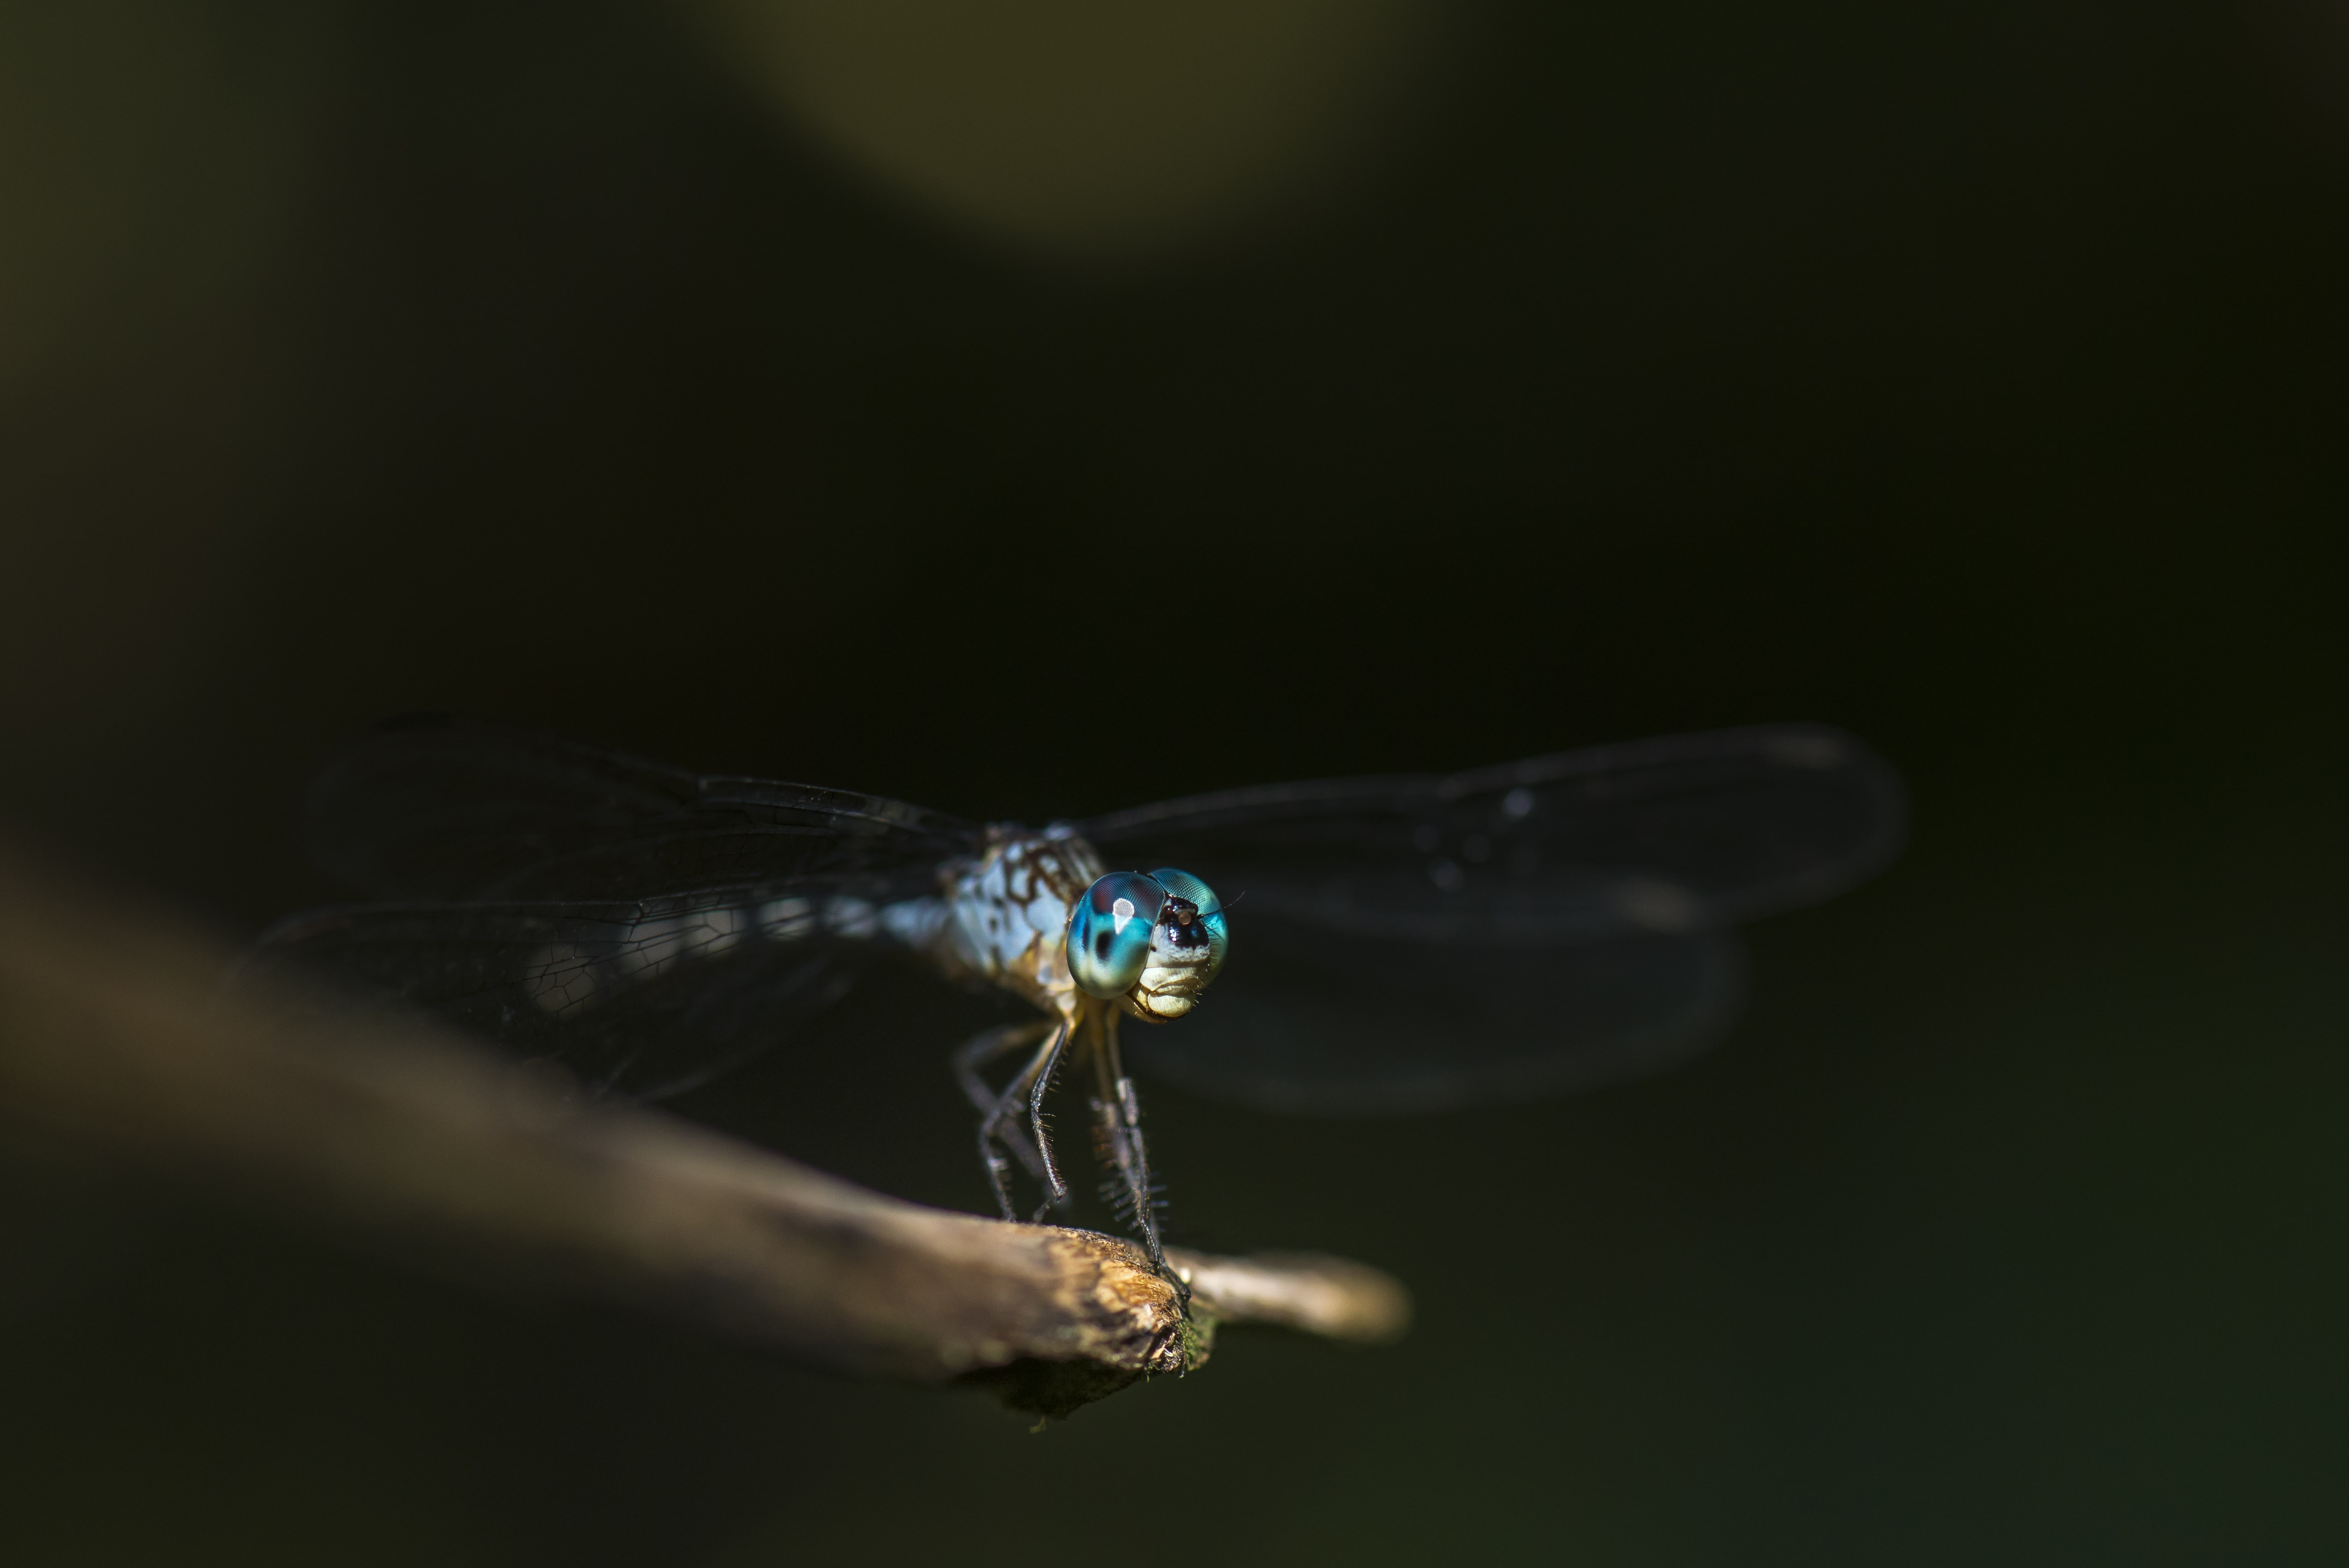 A macro shot of a light blue dragonfly sitting on a stick in Paramaribo